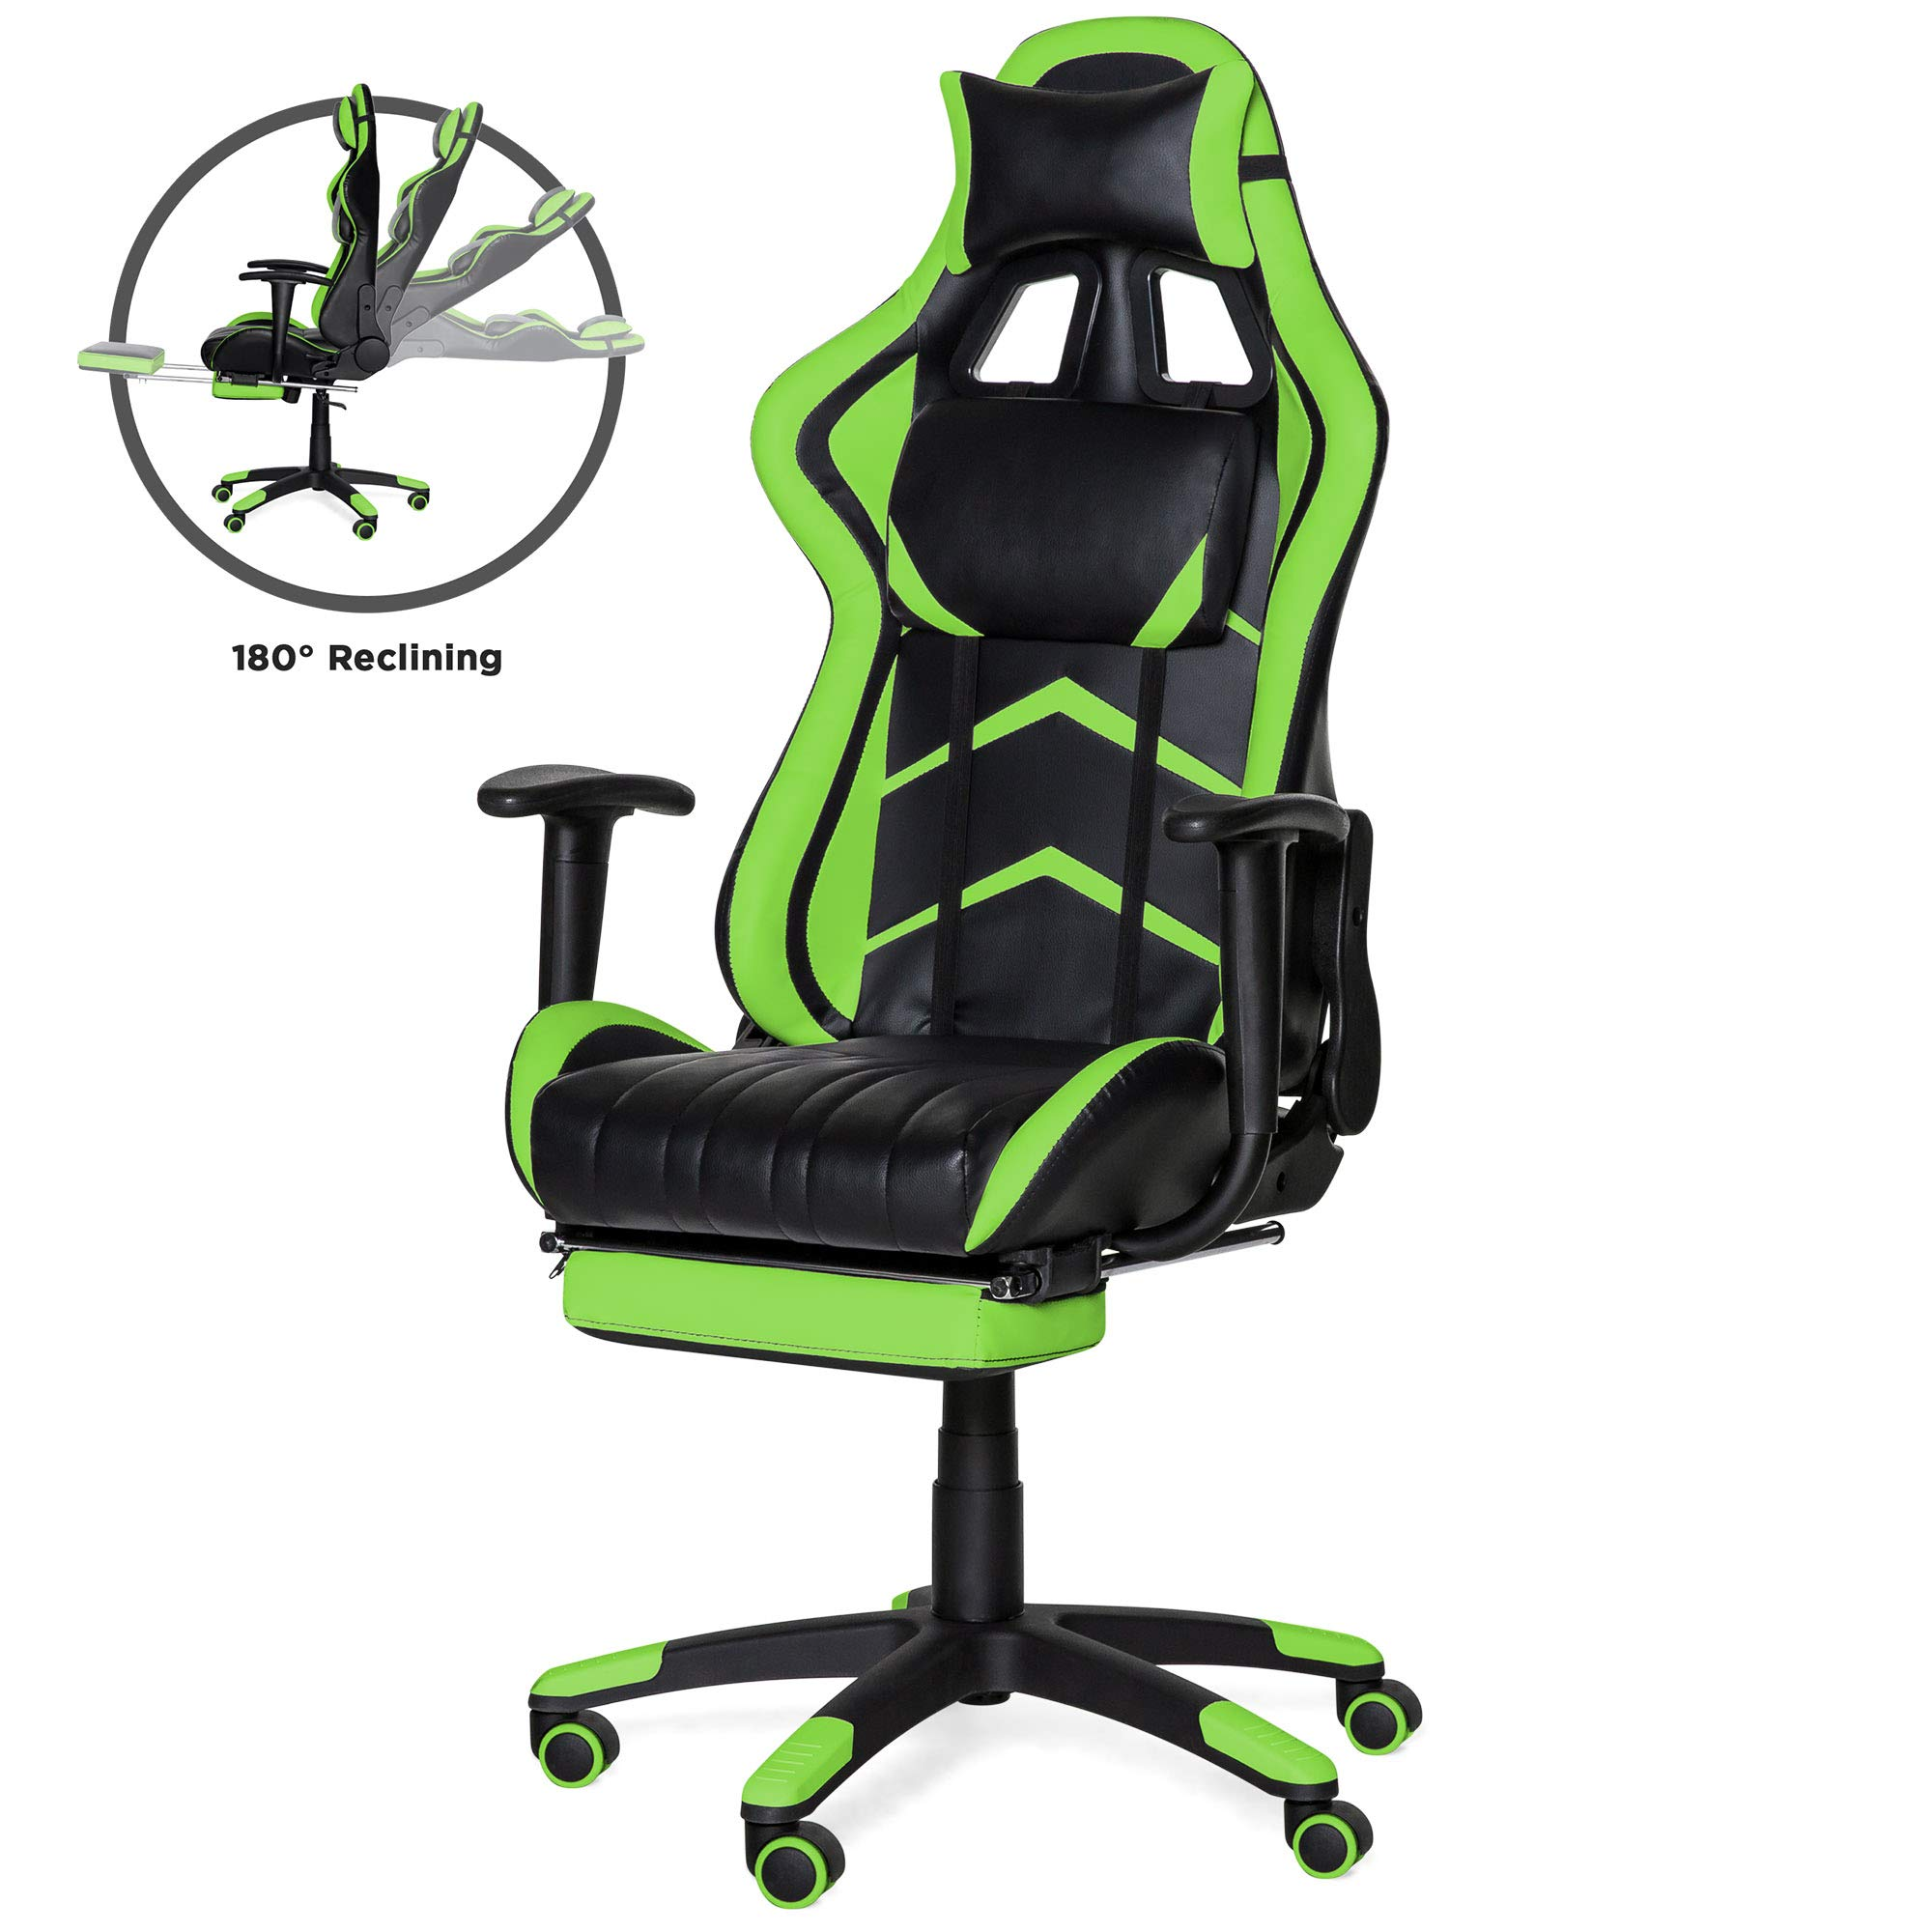 Best Choice Products Ergonomic High Back Executive Office Computer Racing Gaming Chair w/ 360-Degree Swivel, 180-Degree Reclining, Footrest, Adjustable Armrests, Headrest, Lumbar Support, Green by Best Choice Products